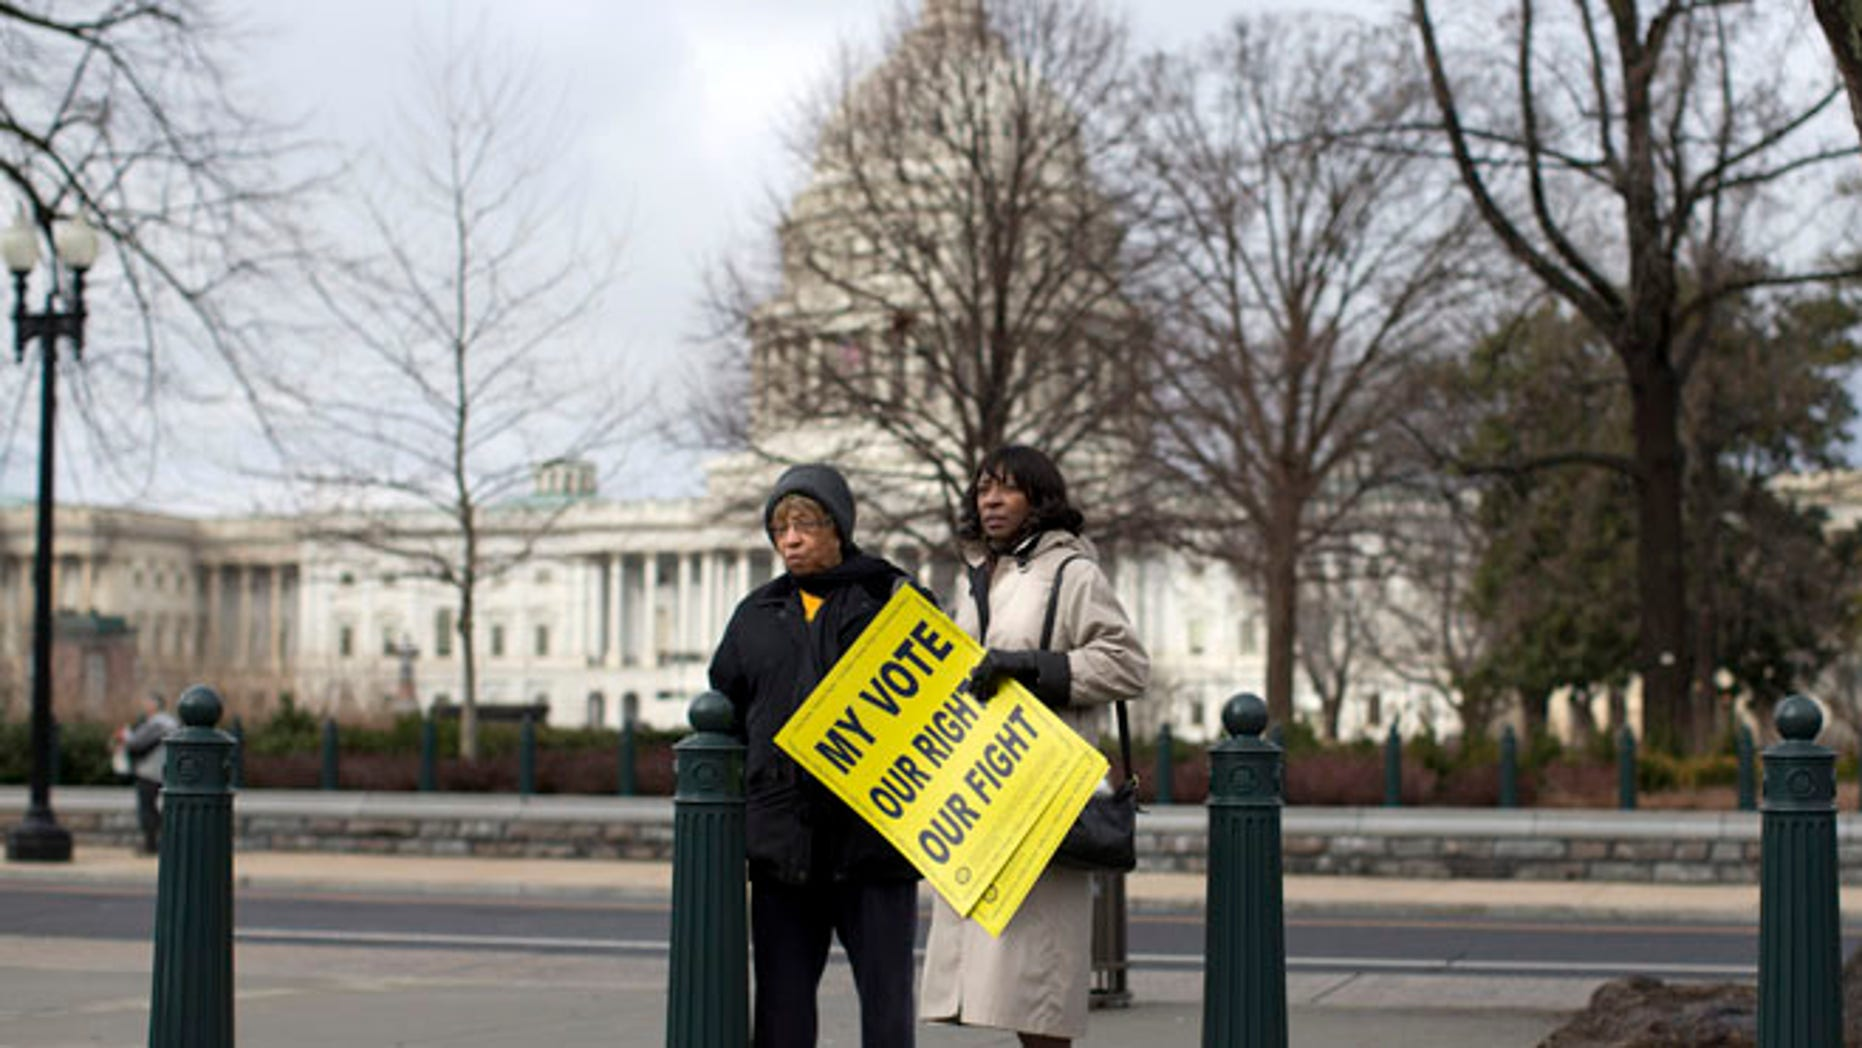 FILE: Feb. 27, 2013: People standing outside the Supreme Court in Washington before the start of a rally during arguments in the Shelby County, Ala., v. Holder case.